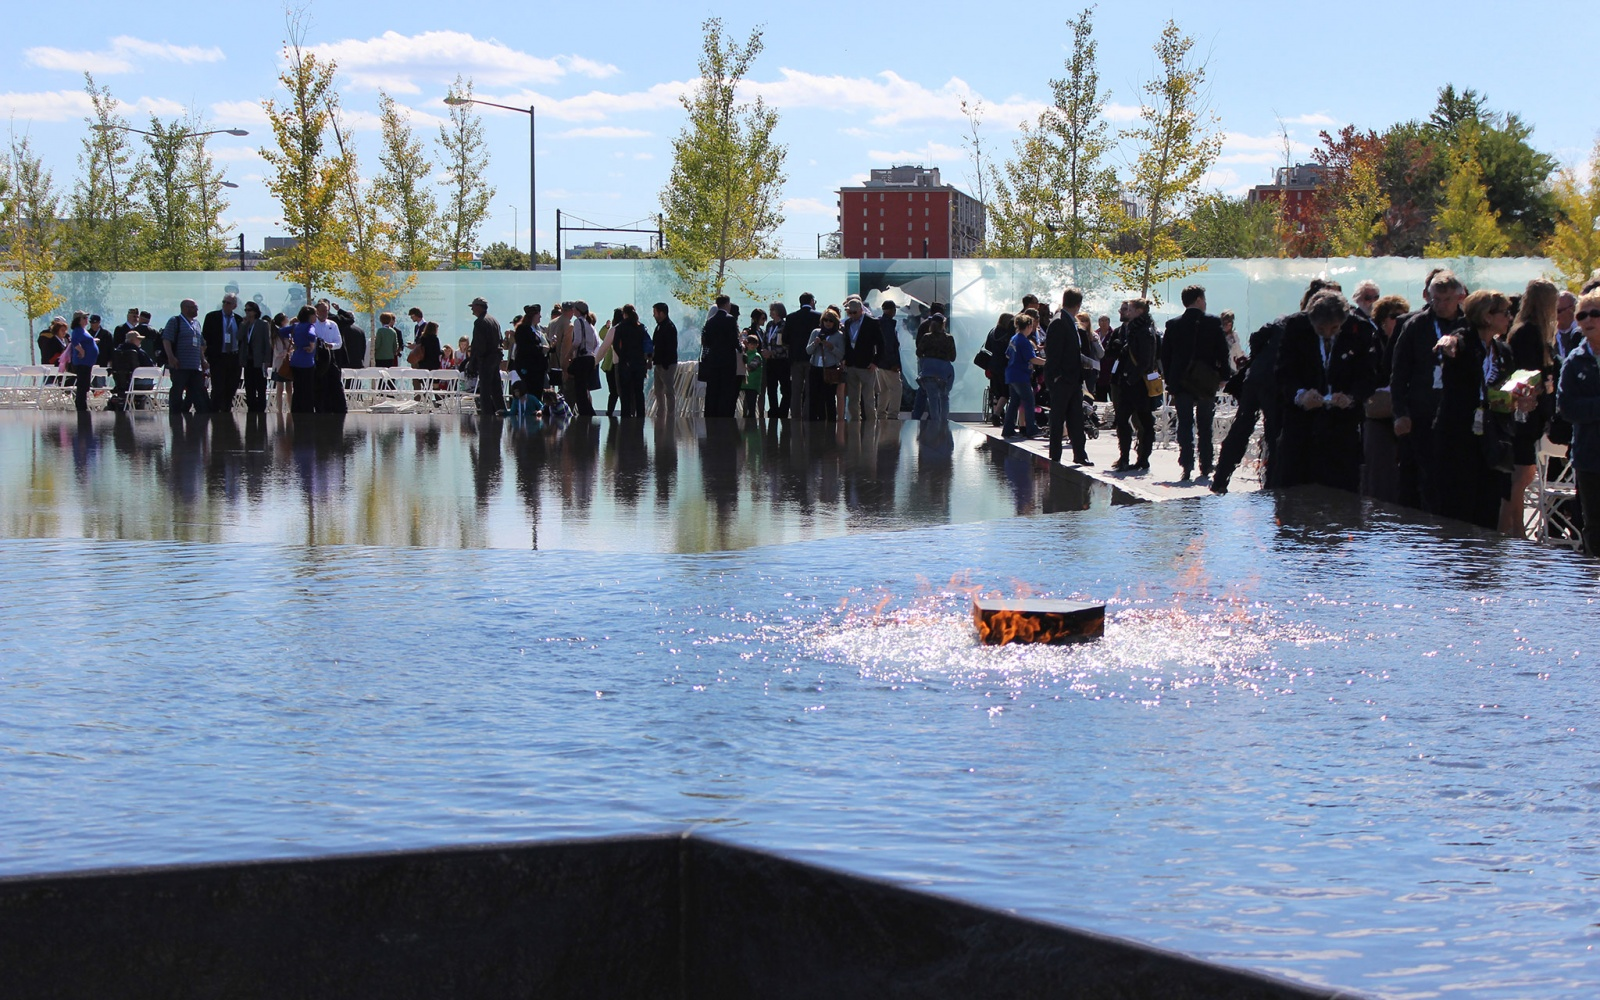 201412-w-coolest-new-tourist-attractions-2015-memorial-for-disabled-veterans